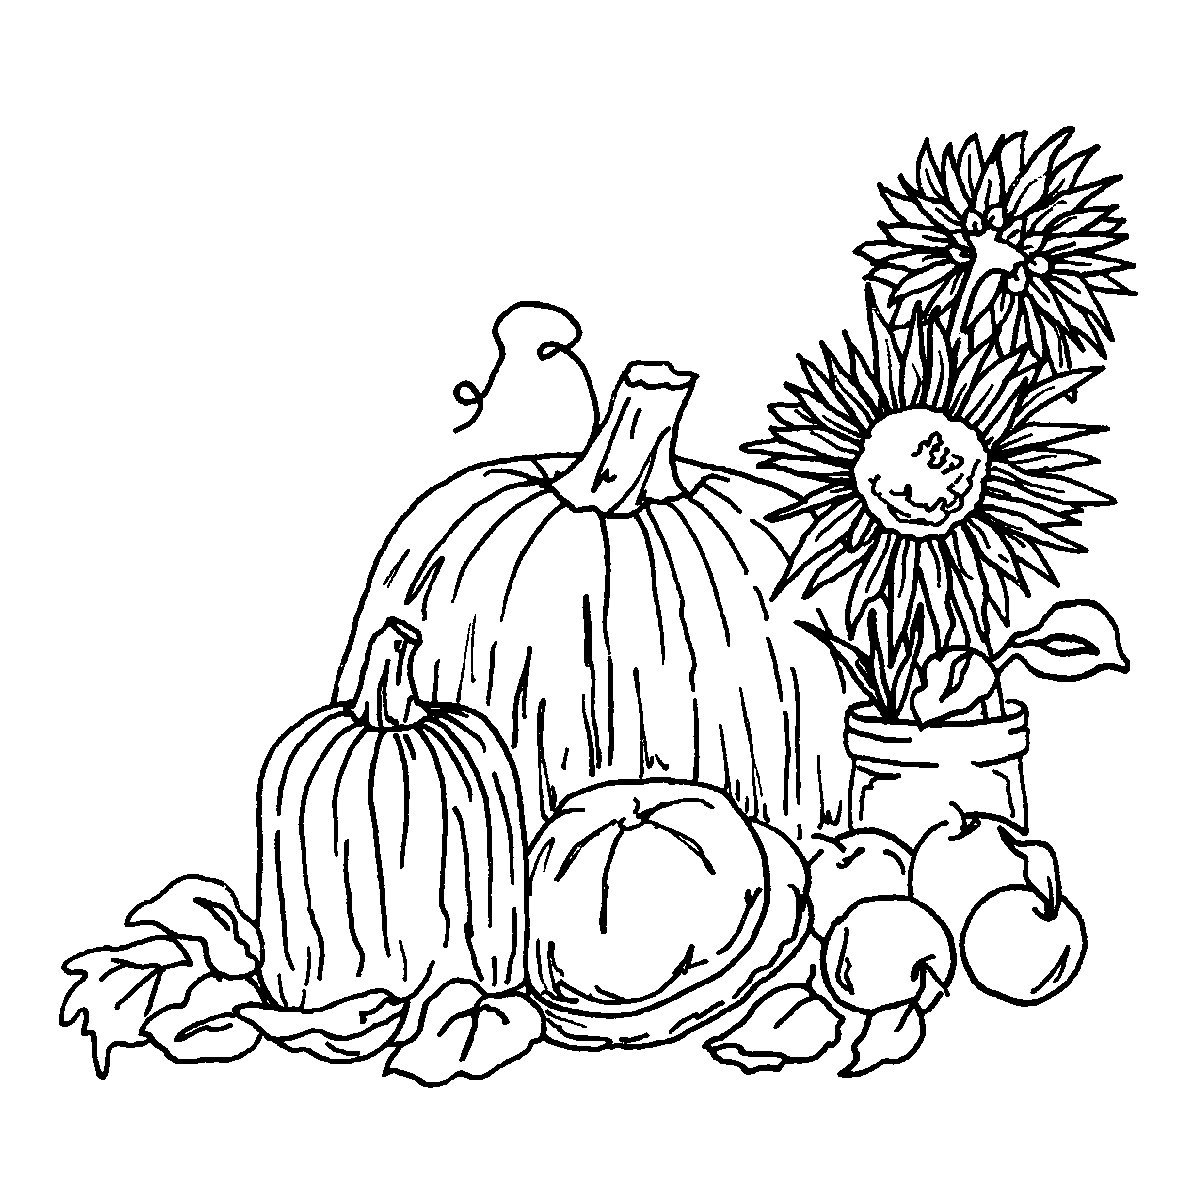 harvest coloring pages printables - Harvest Coloring Pages Printables